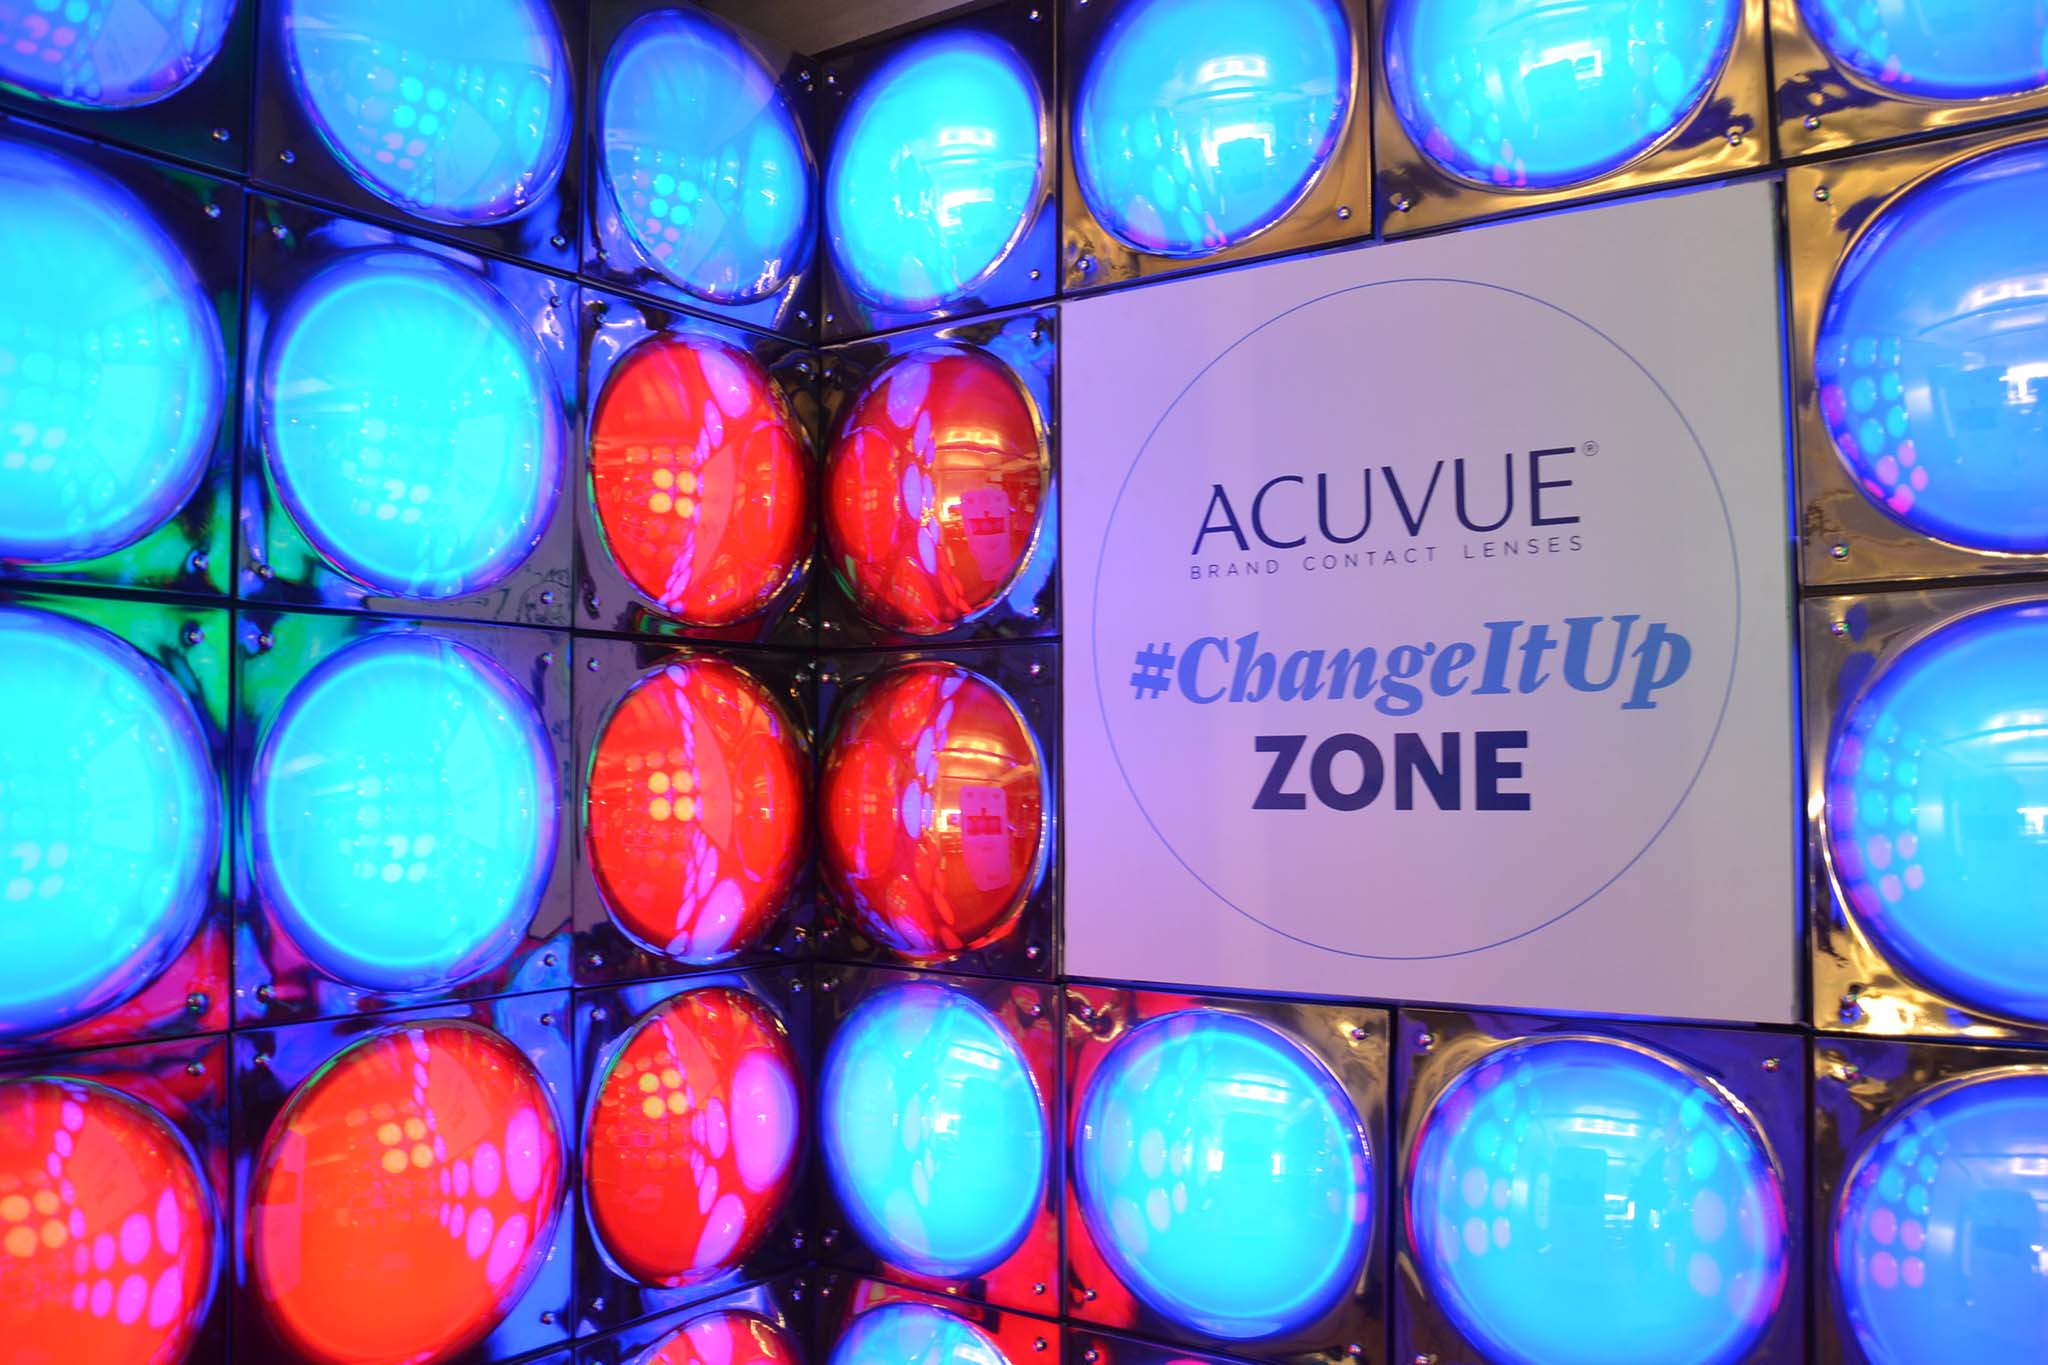 Acuvue Activation